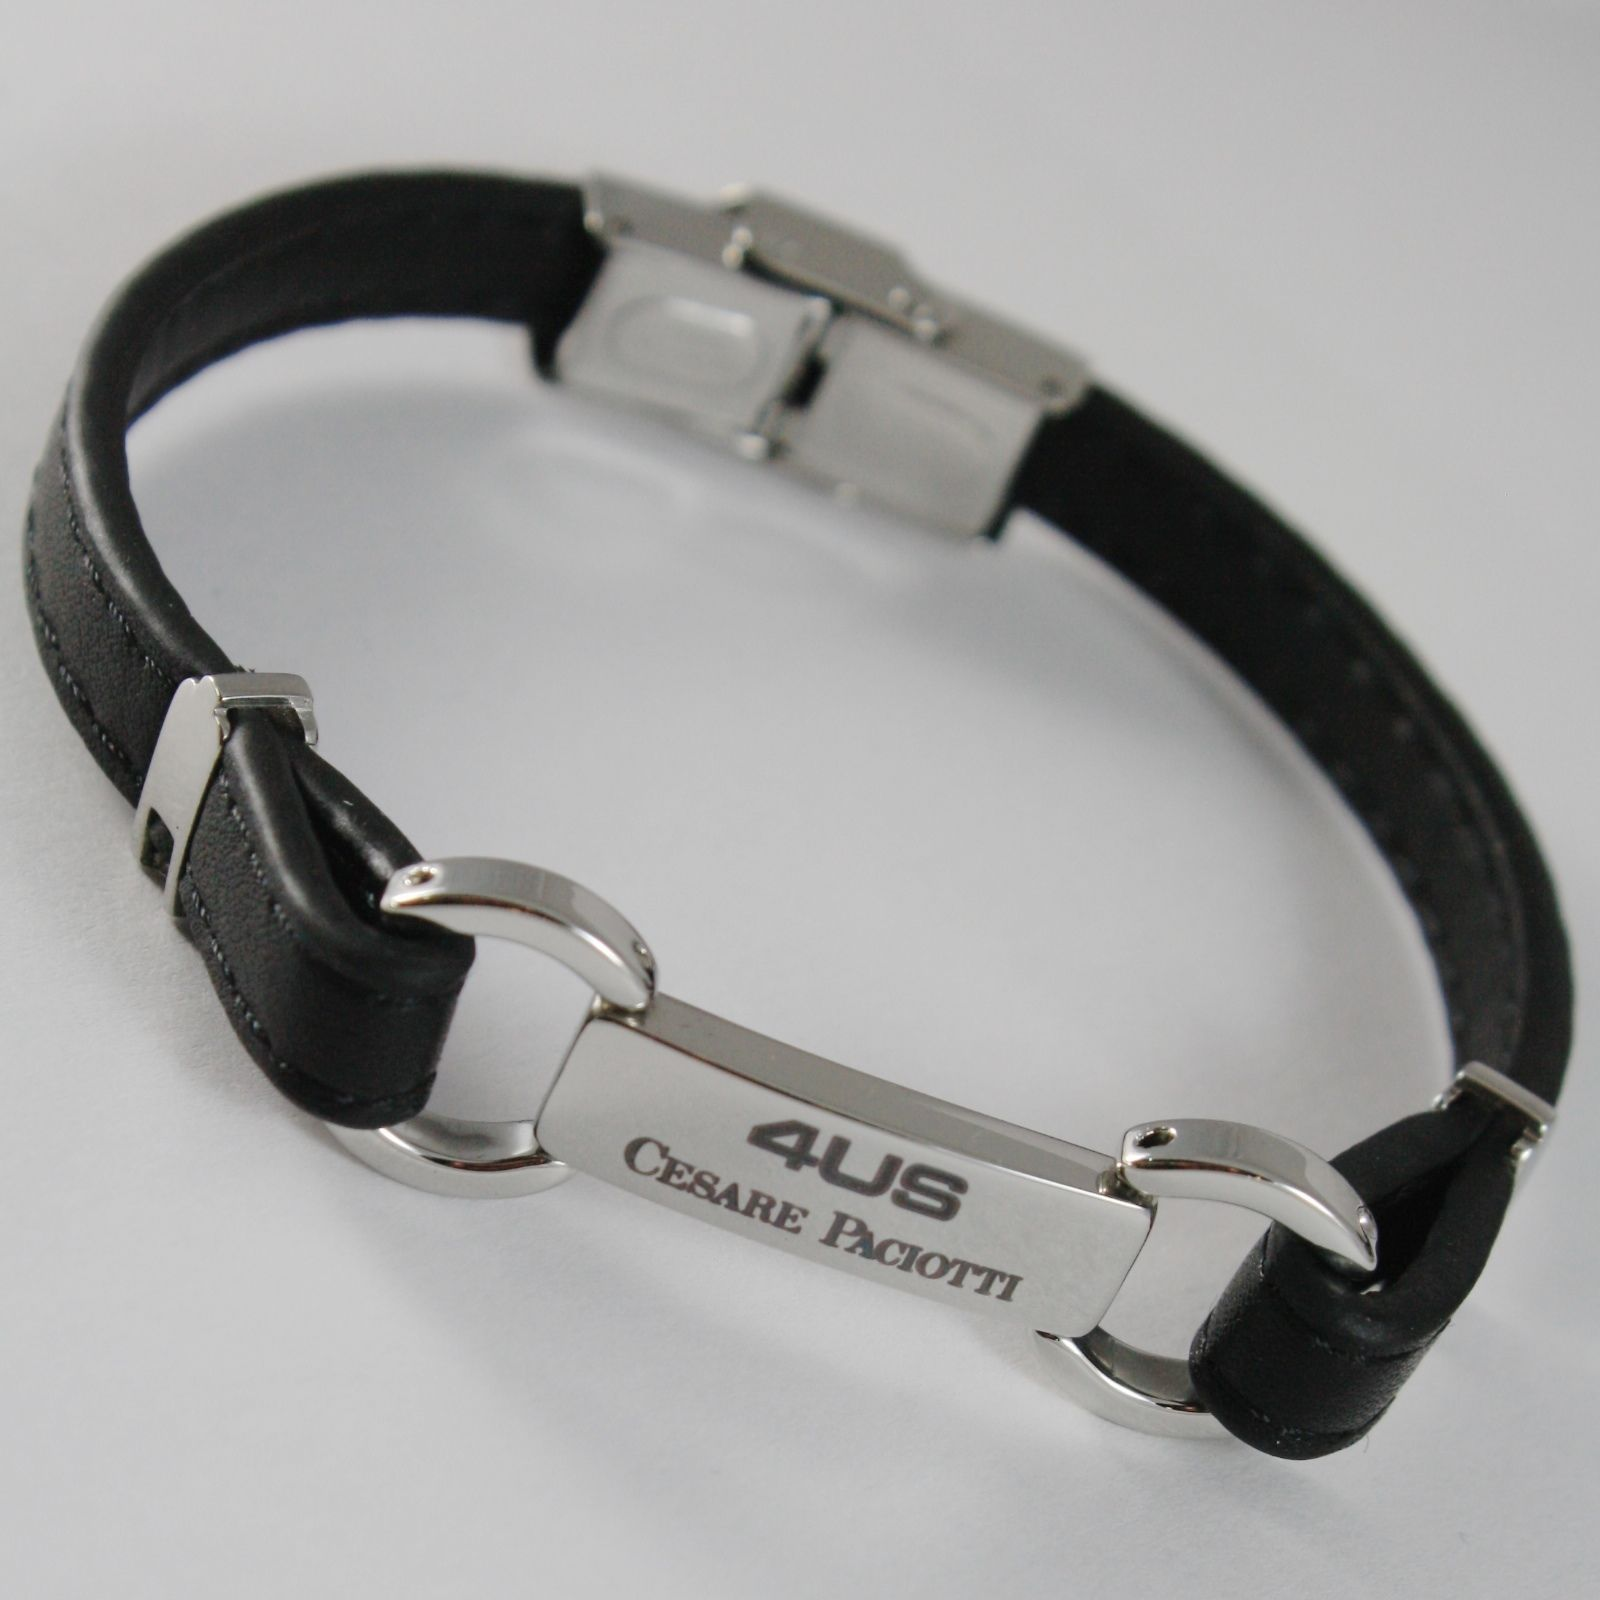 MEN'S BRACELET STEEL AND BLACK LEATHER CESARE PACIOTTI 4US ARTICLE 4UBR1056